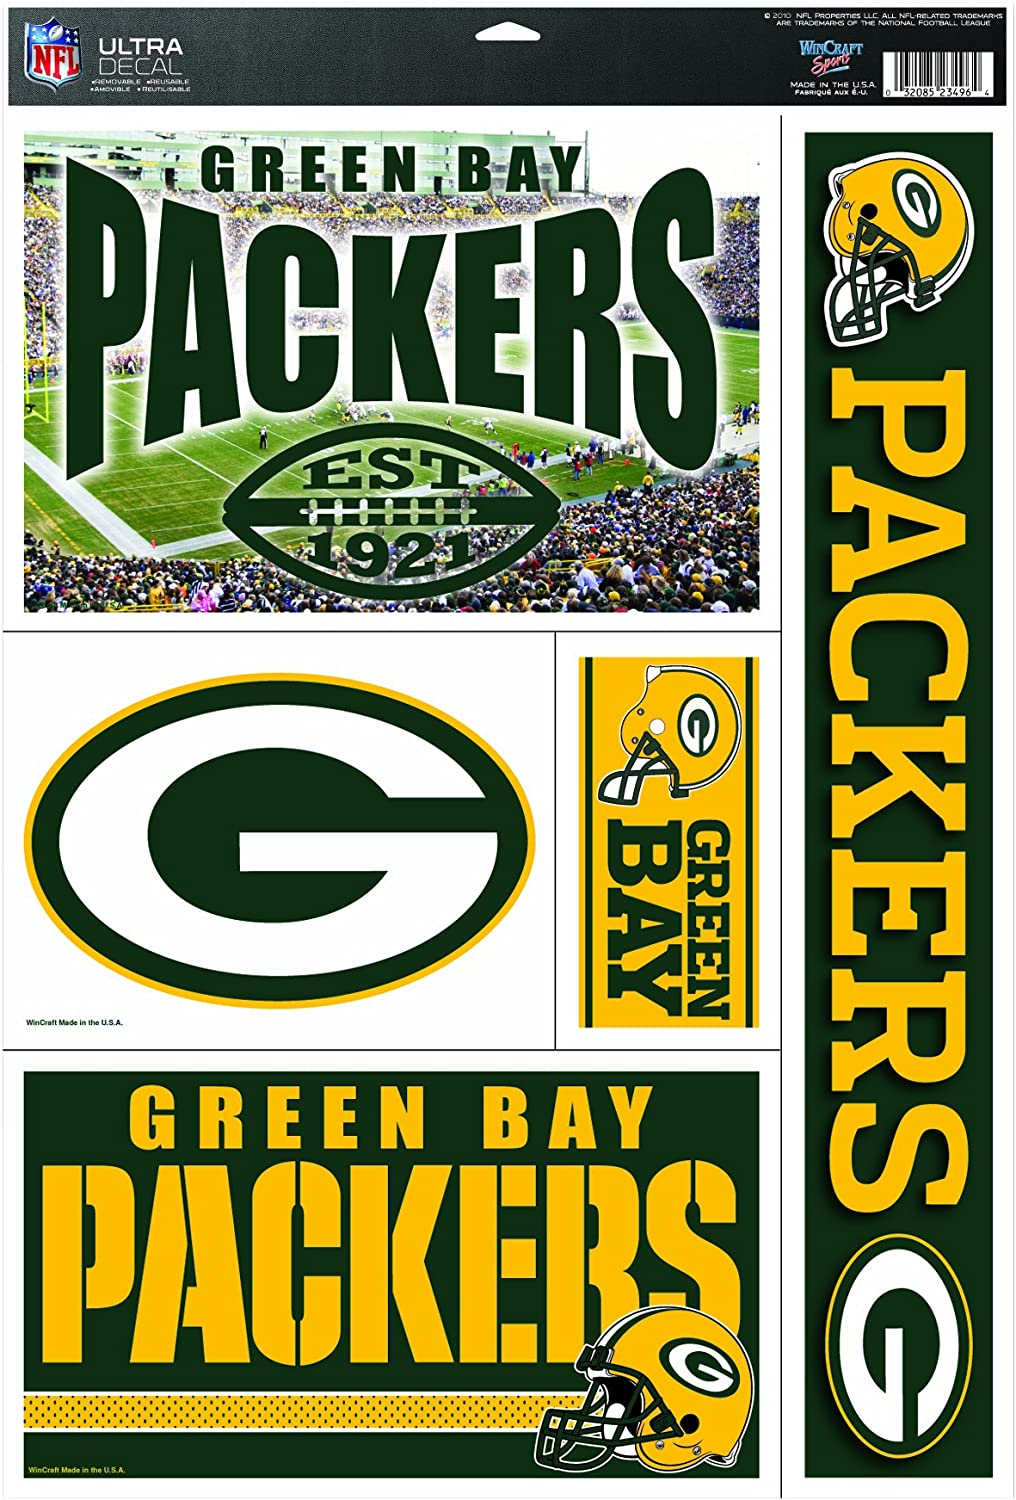 NFL Green Bay Packers 11by17 Ultra Decal Multiple Designs